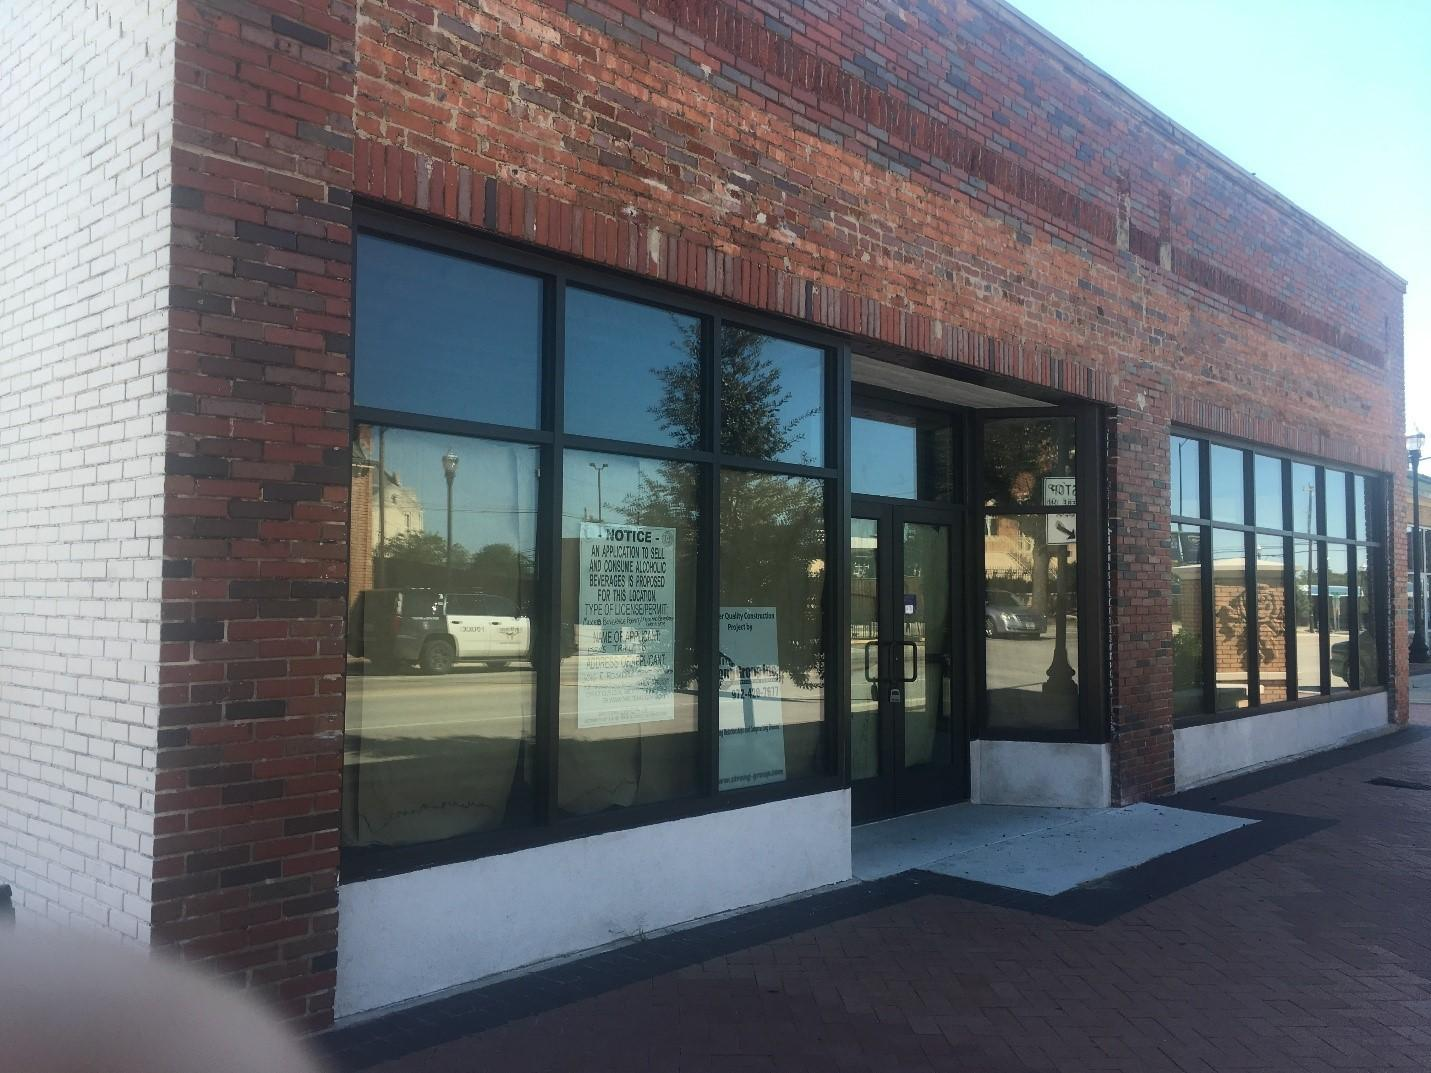 Ben's Triple B slated to open spring 2019